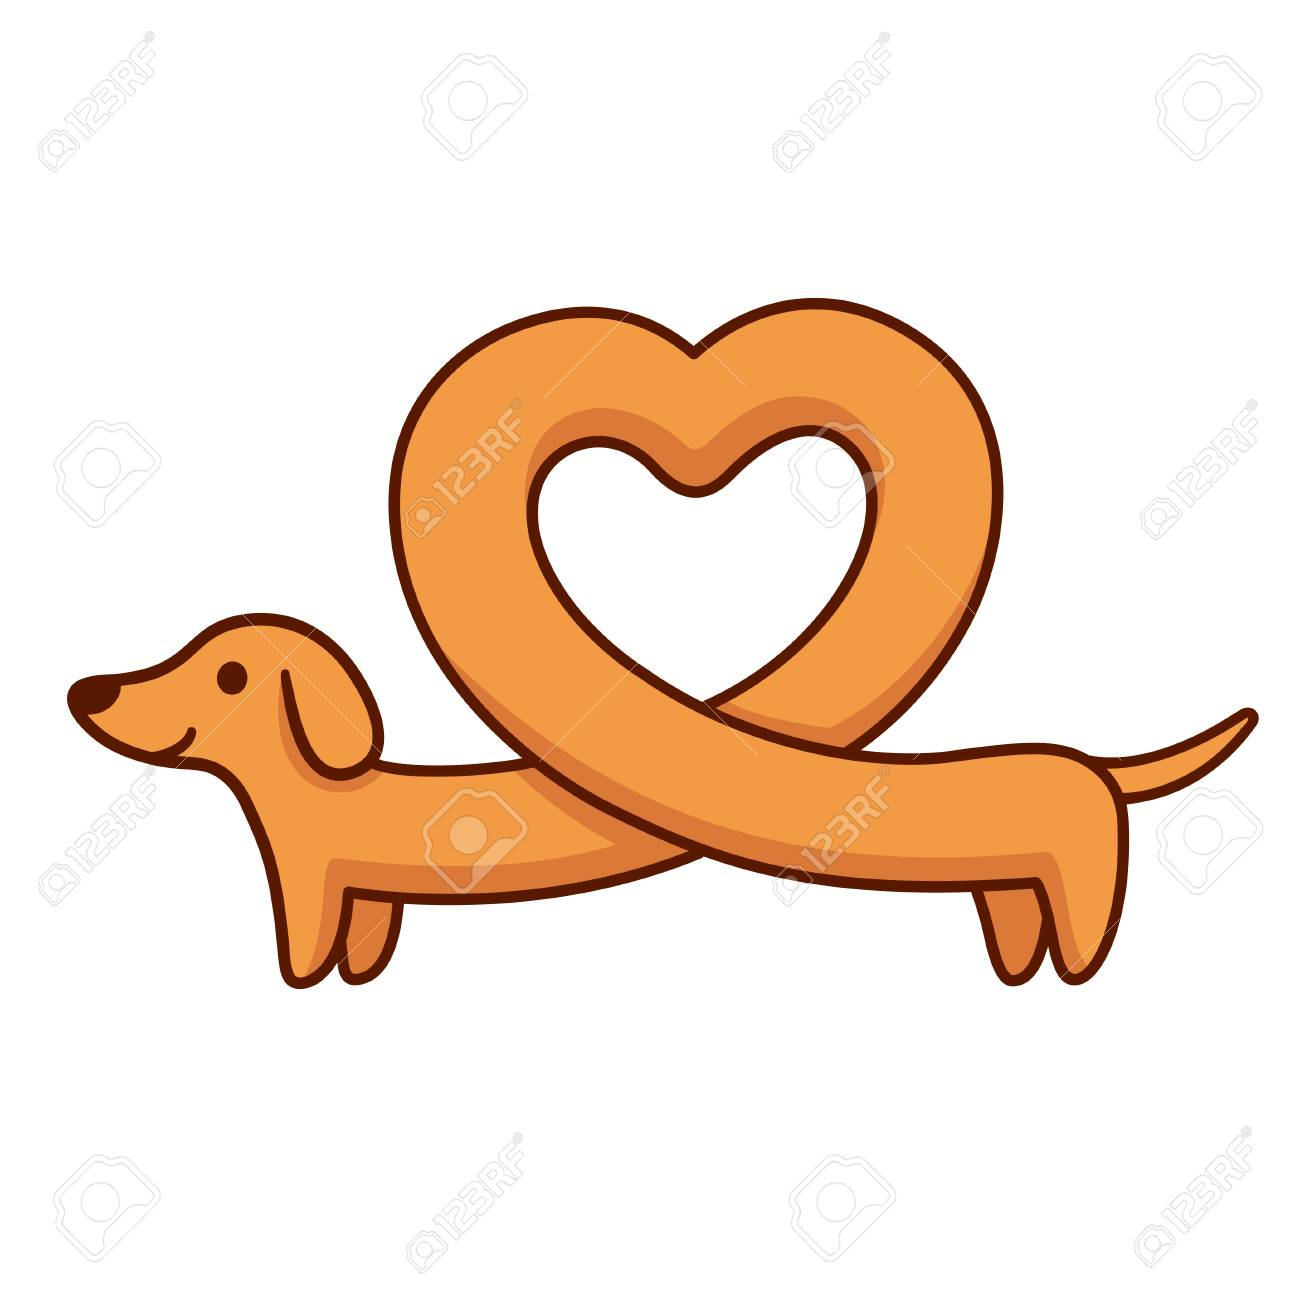 Cute cartoon dachshund with heart shaped body, funny long wiener dog. St. Valentines day greeting card vector illustration. - 89095085